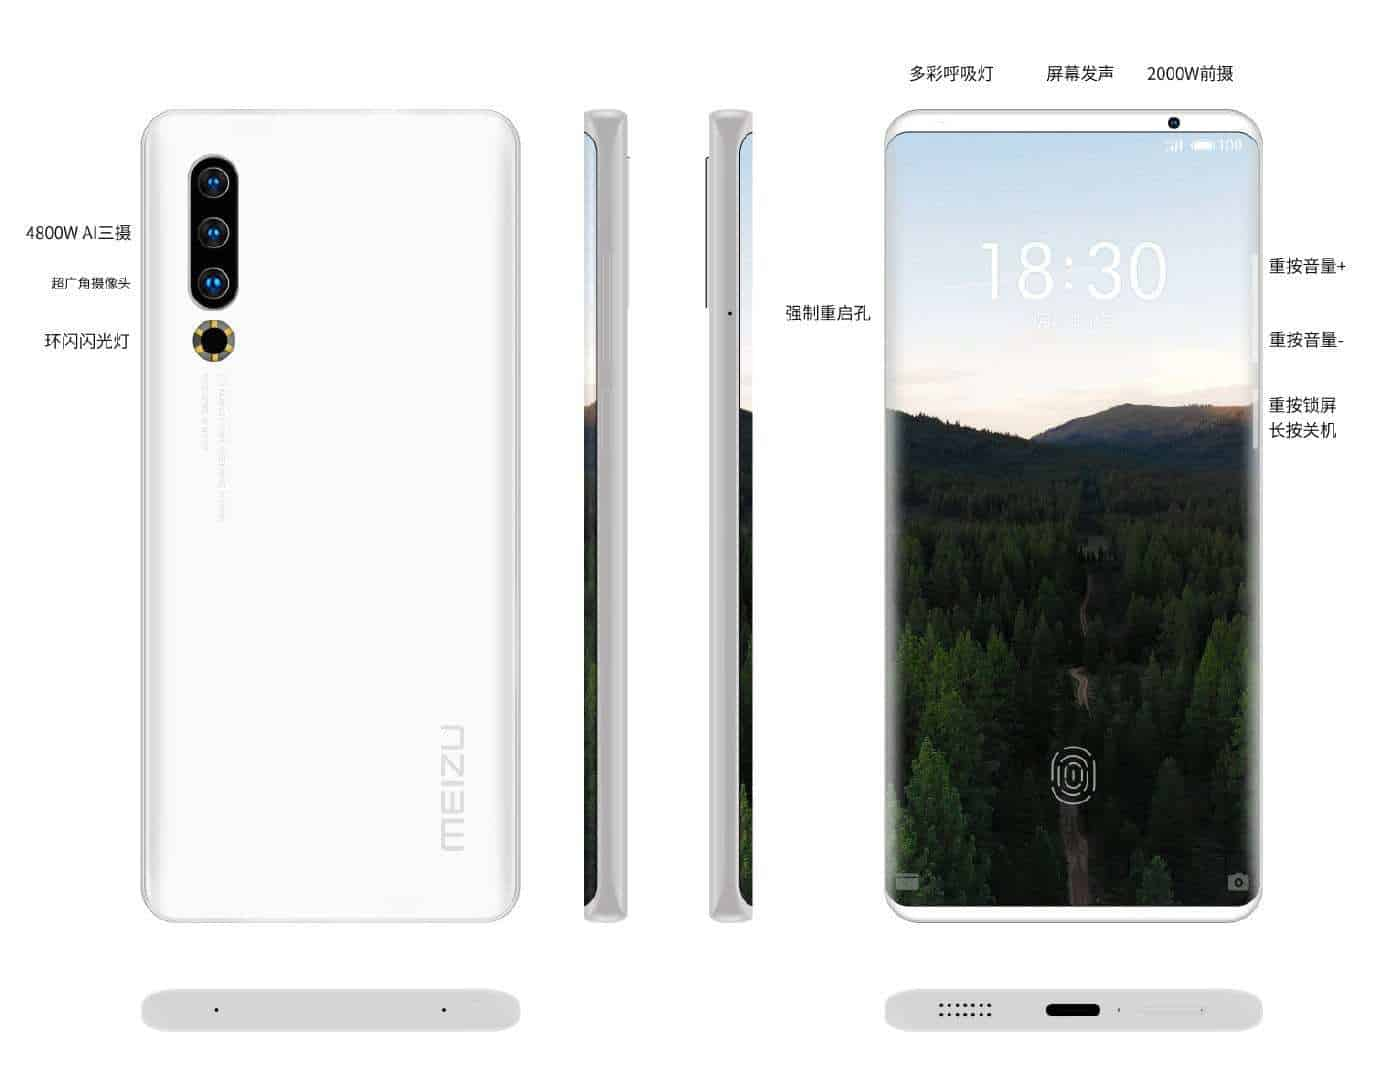 Renders of the Meizu 17 show their incredible design with curved screen 1